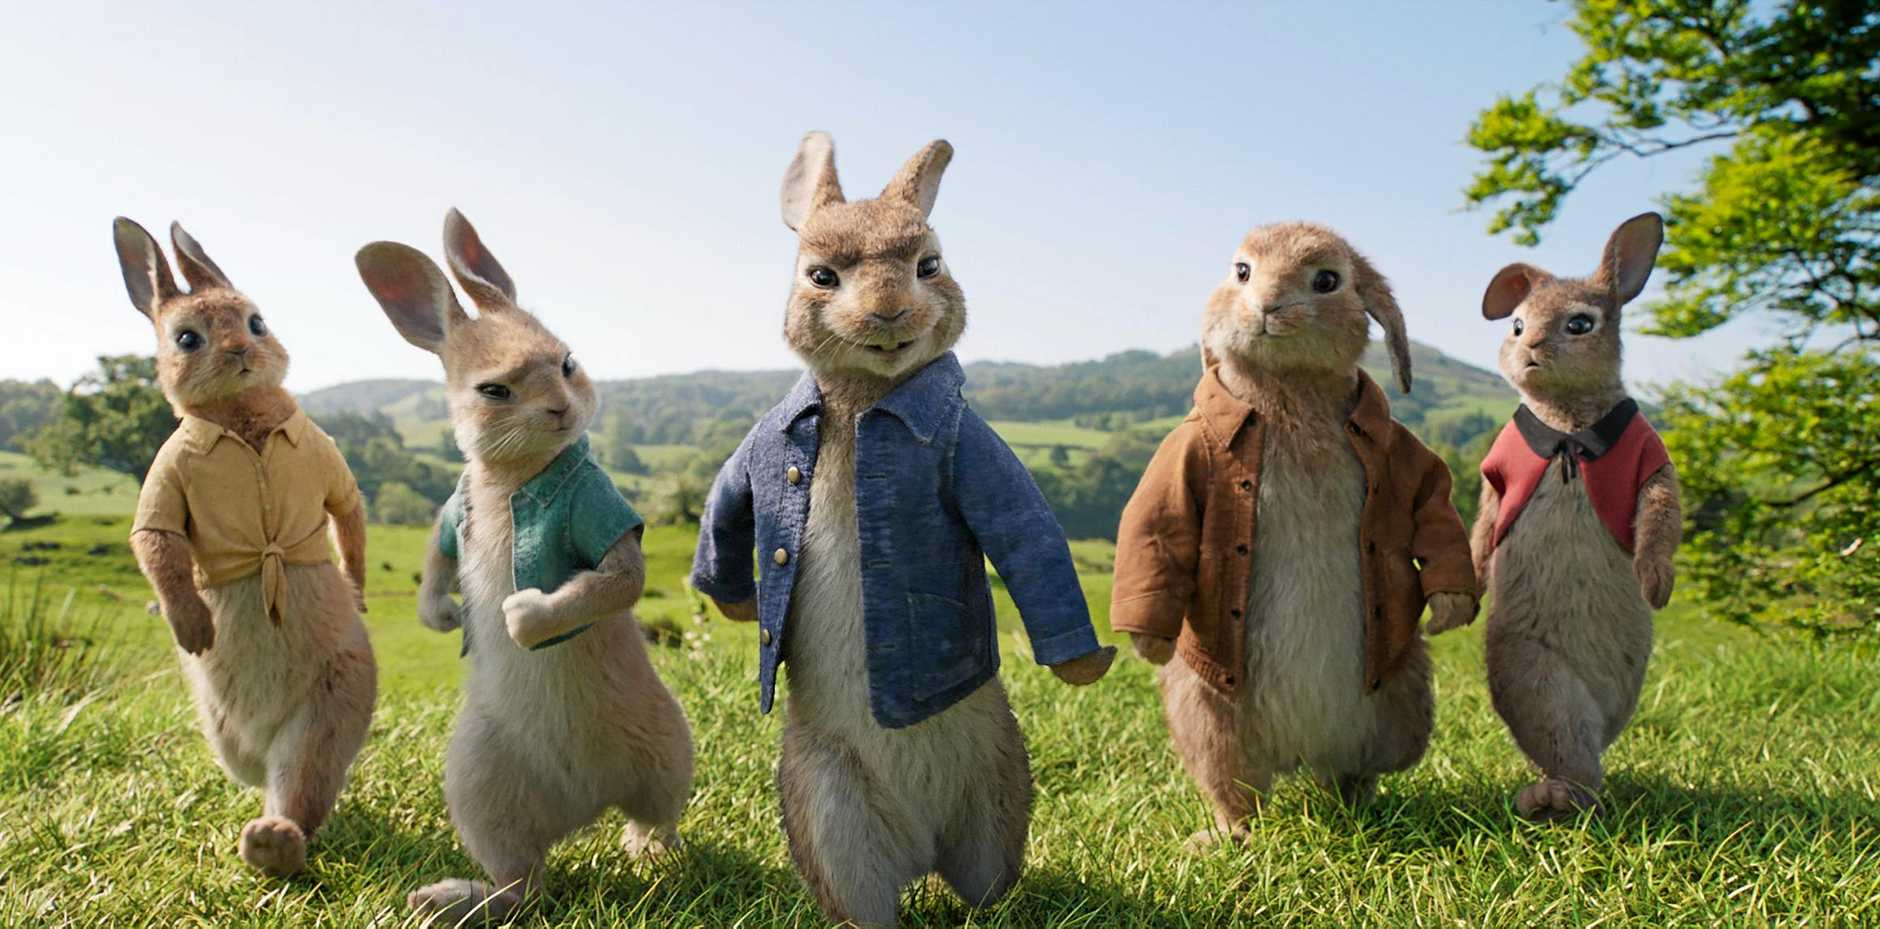 The Peter Rabbit movie will hit Rockhampton cinemas these school holidays.